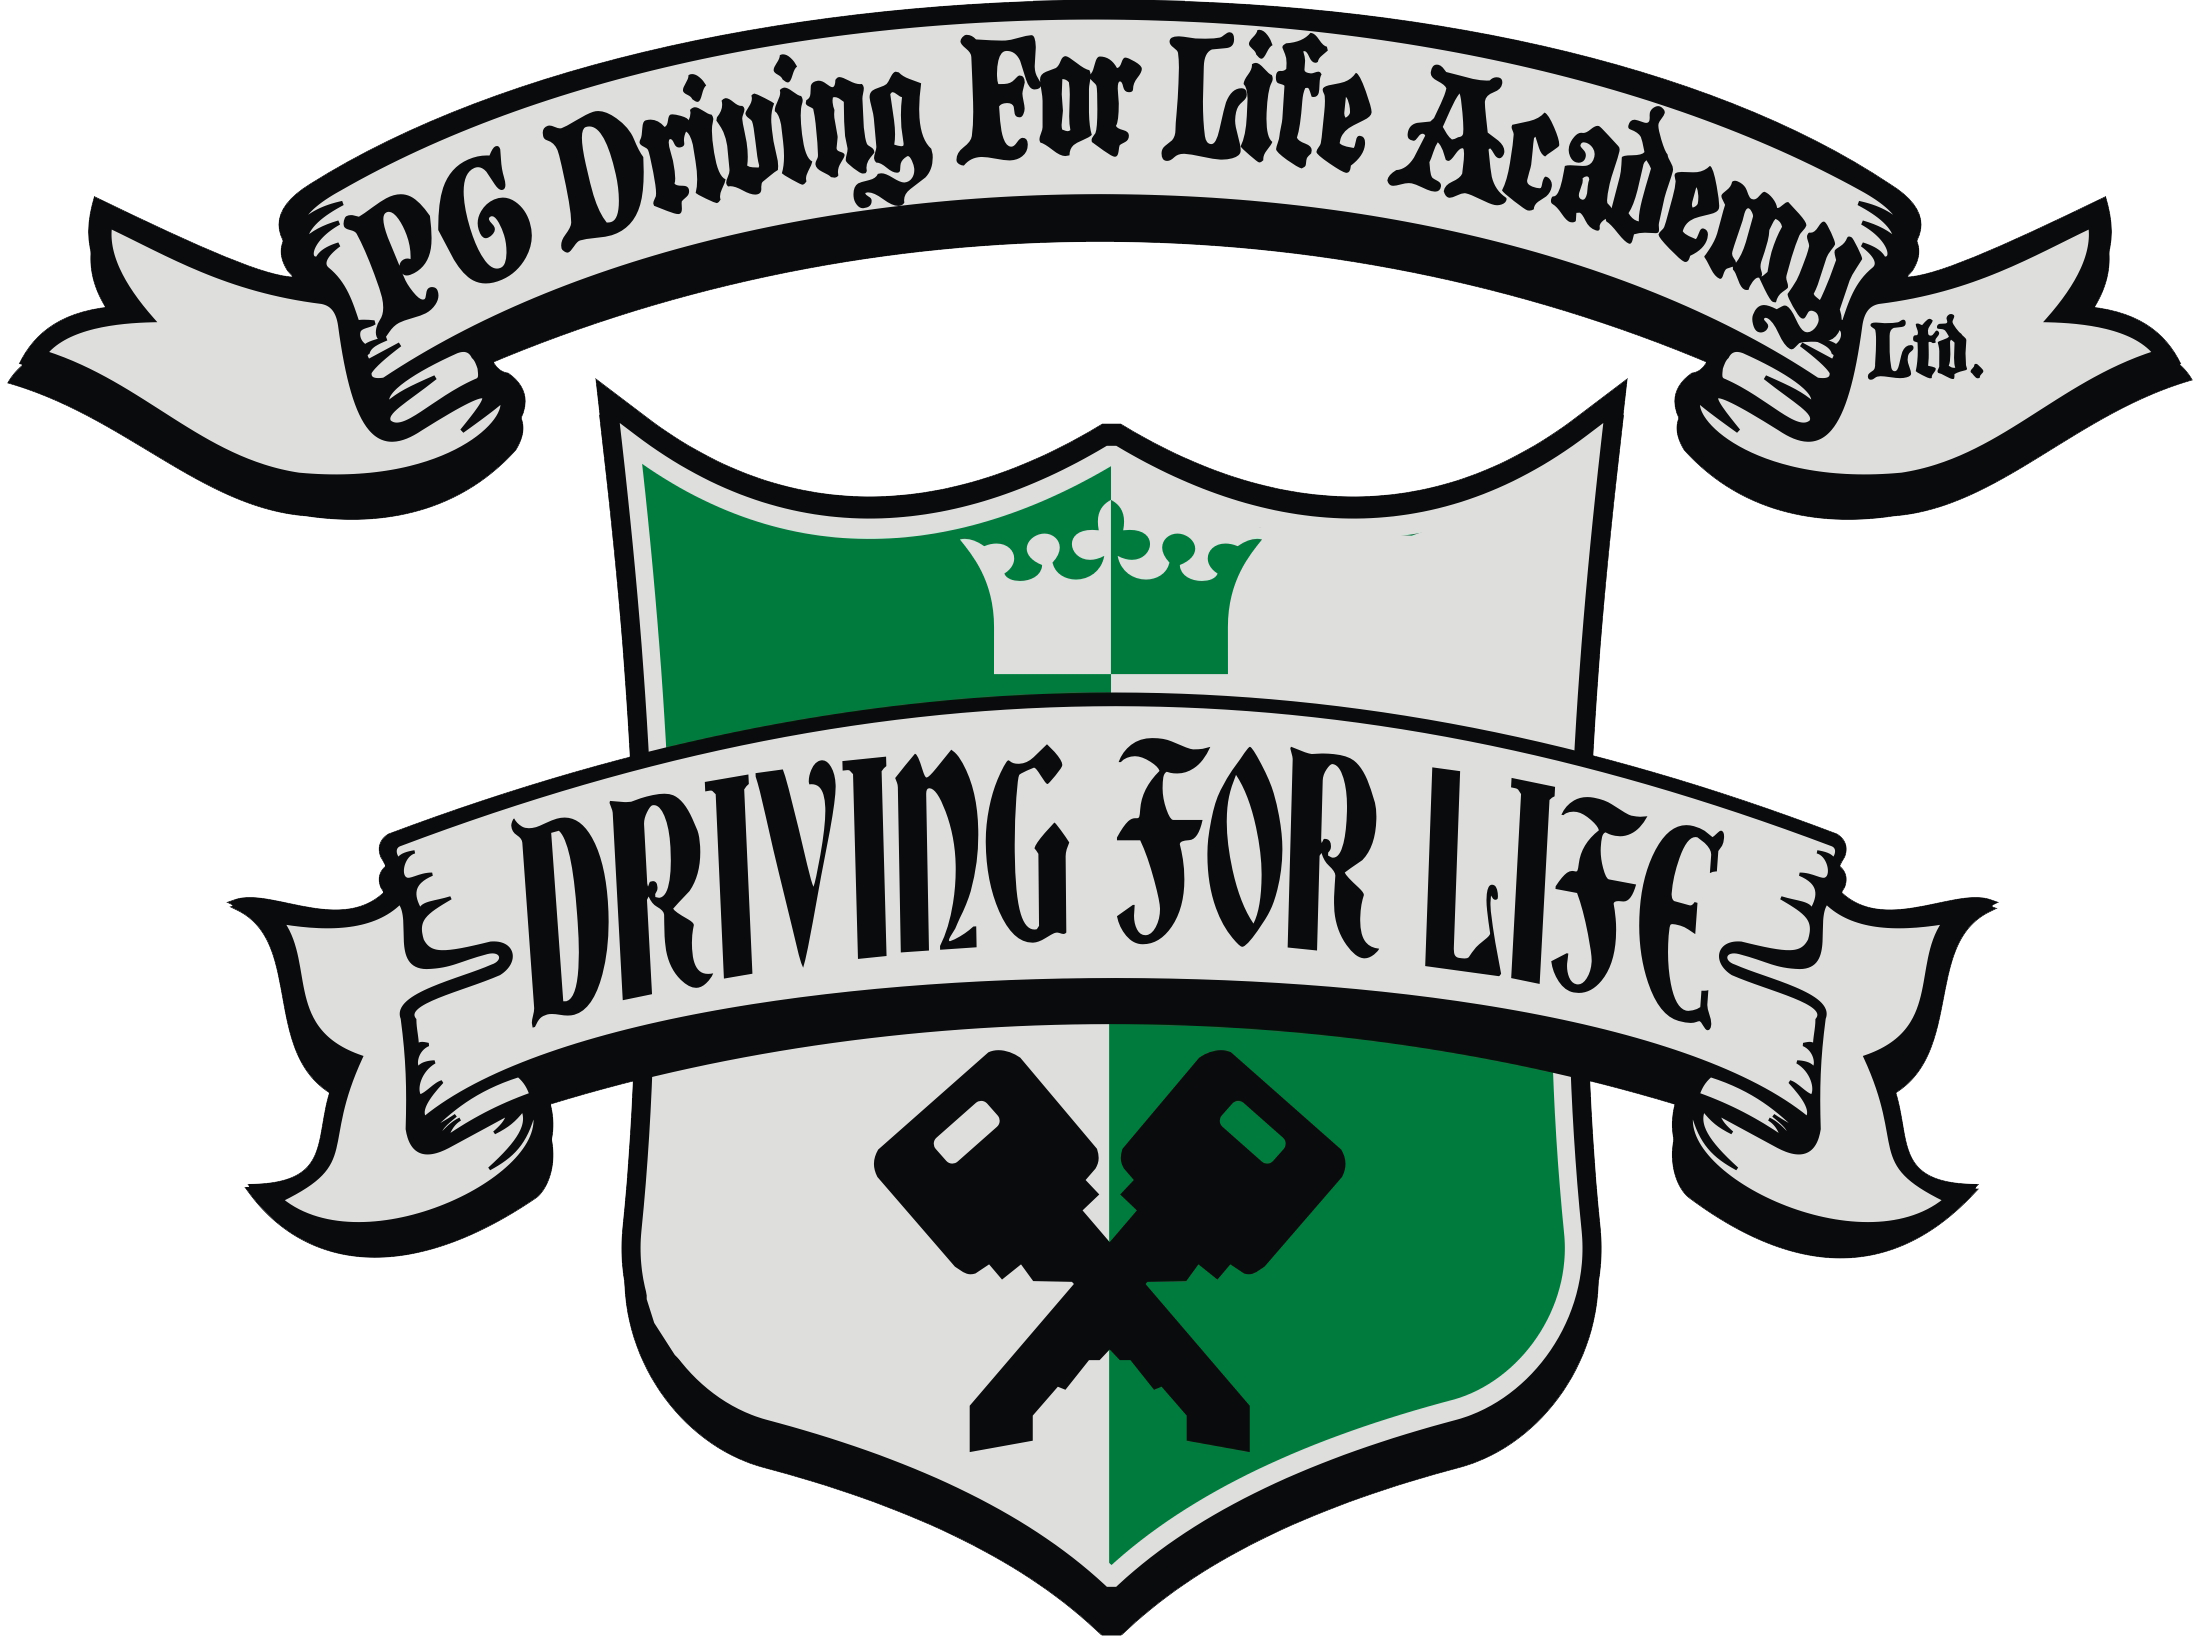 Driving for Life Academy Prince George BC